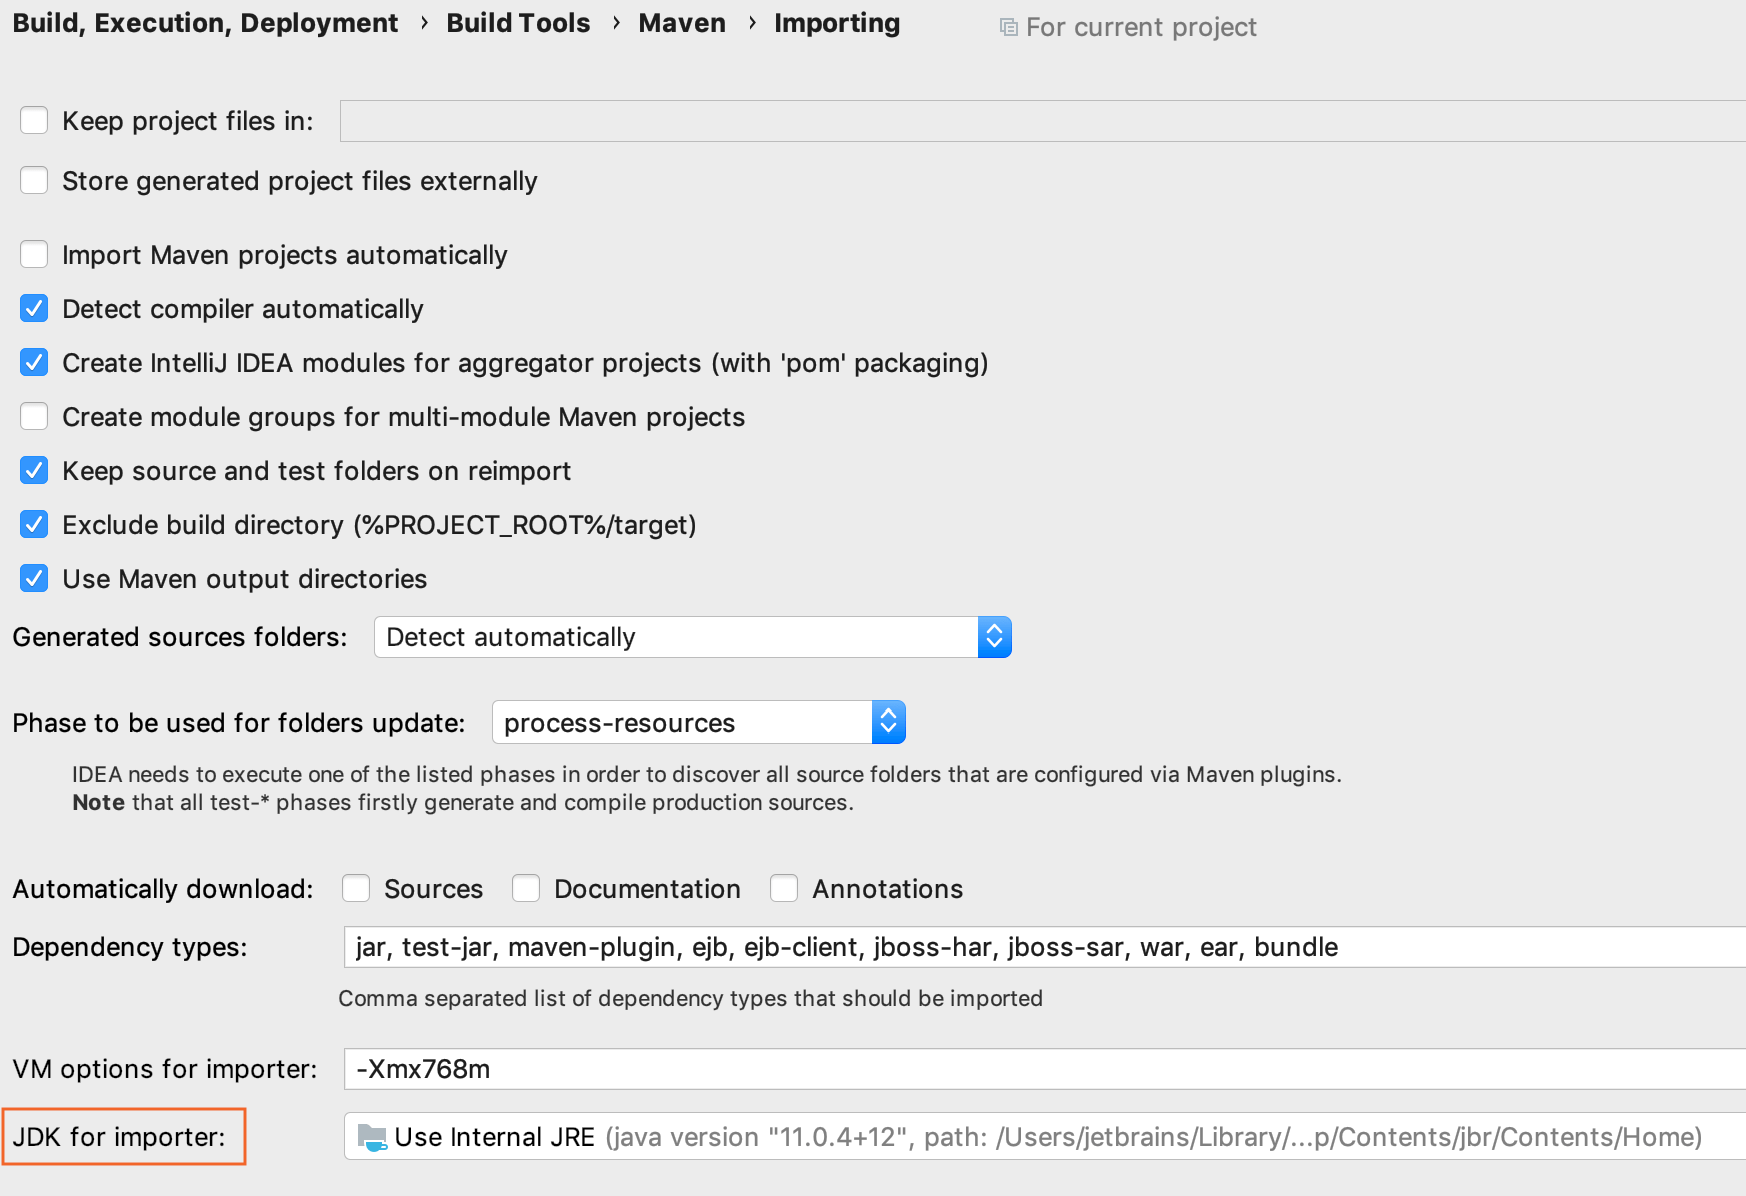 Maven Settings / Importing page